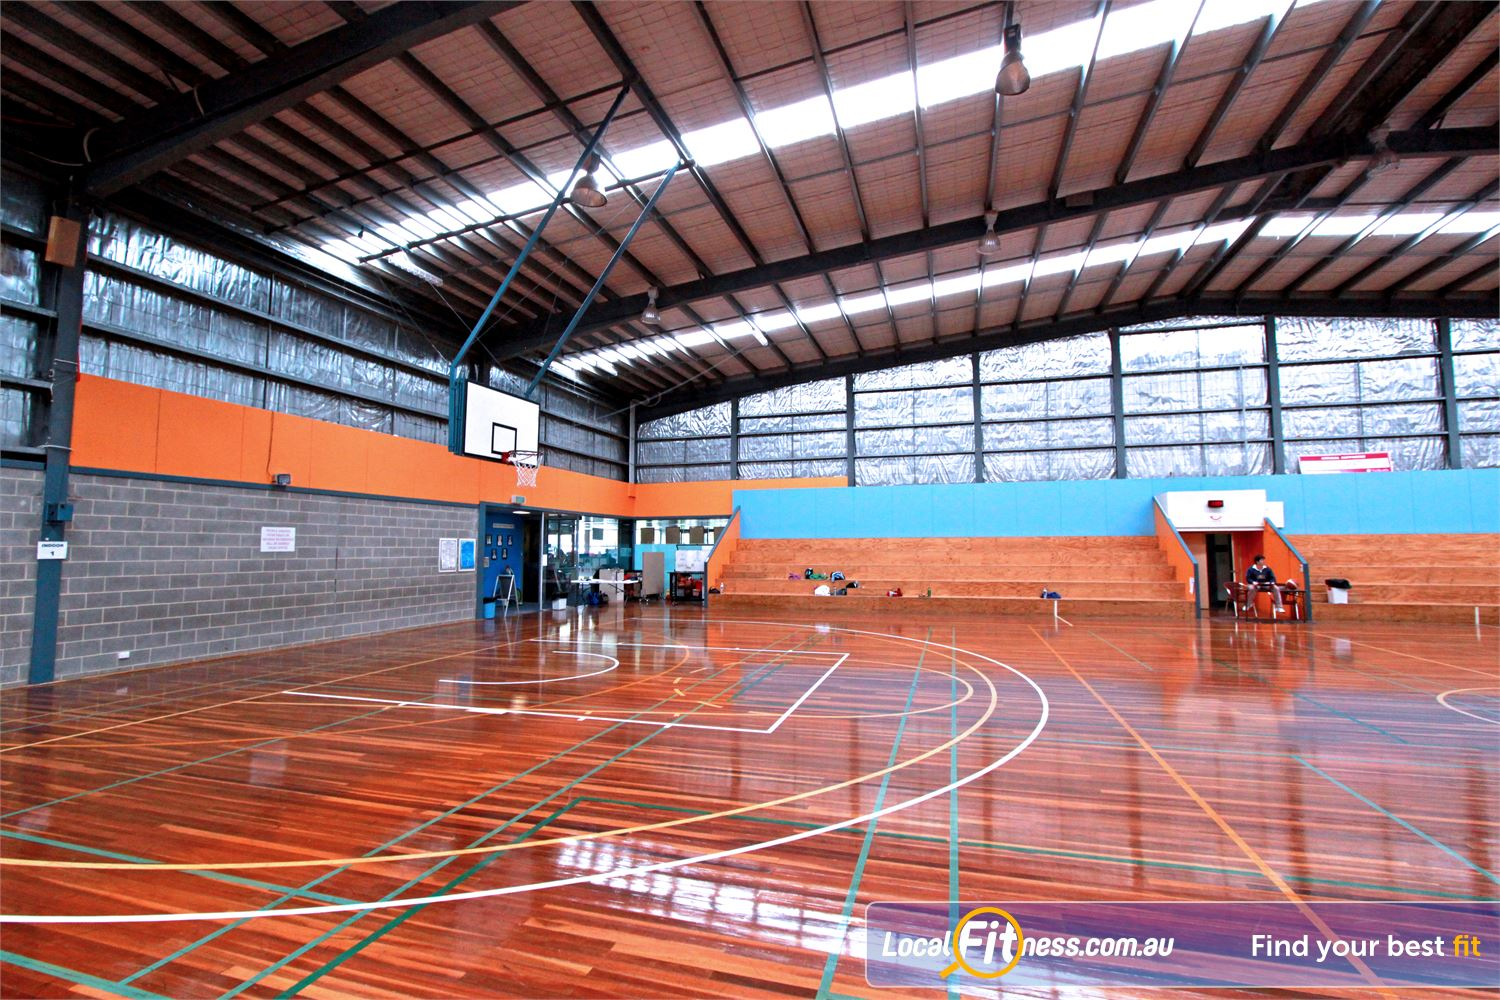 Yarra Recreation Centre Yarra Junction The Yarra Centre 2 court stadium.